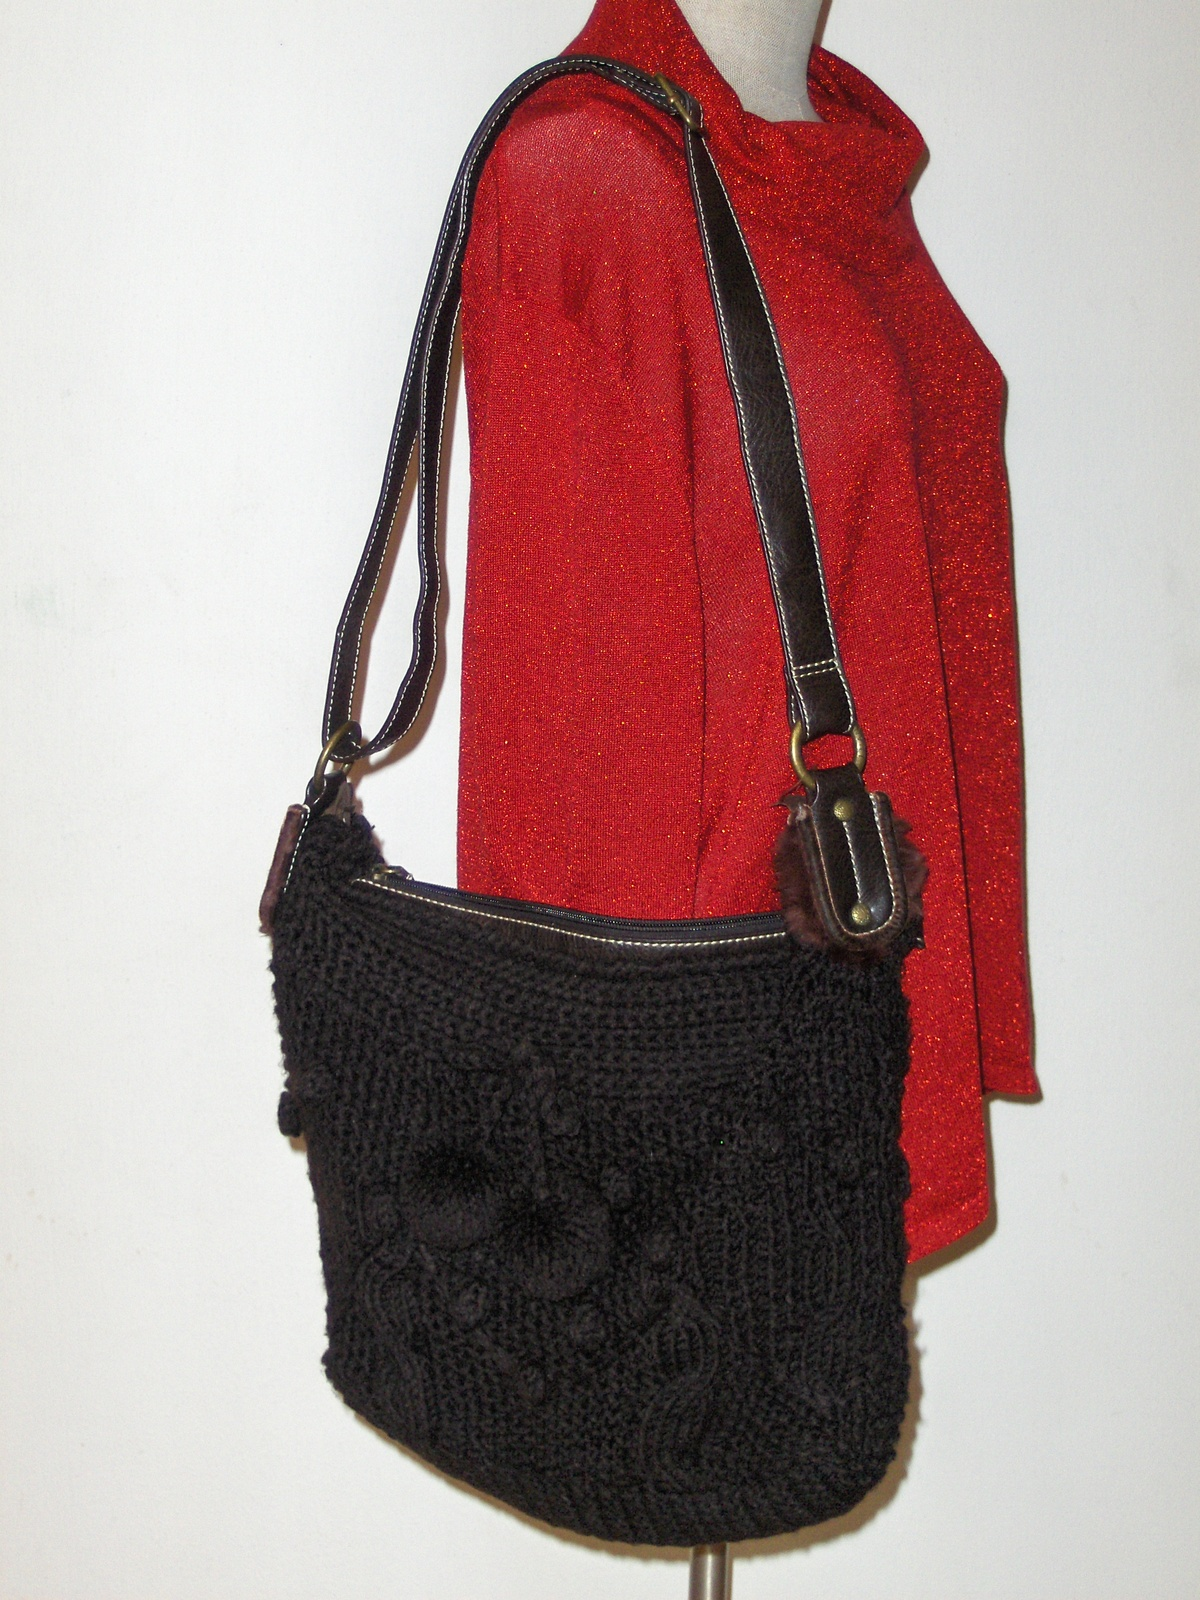 Luana Sweater Hobo Bag Crochet Shoulder Bag - Handbags & Purses